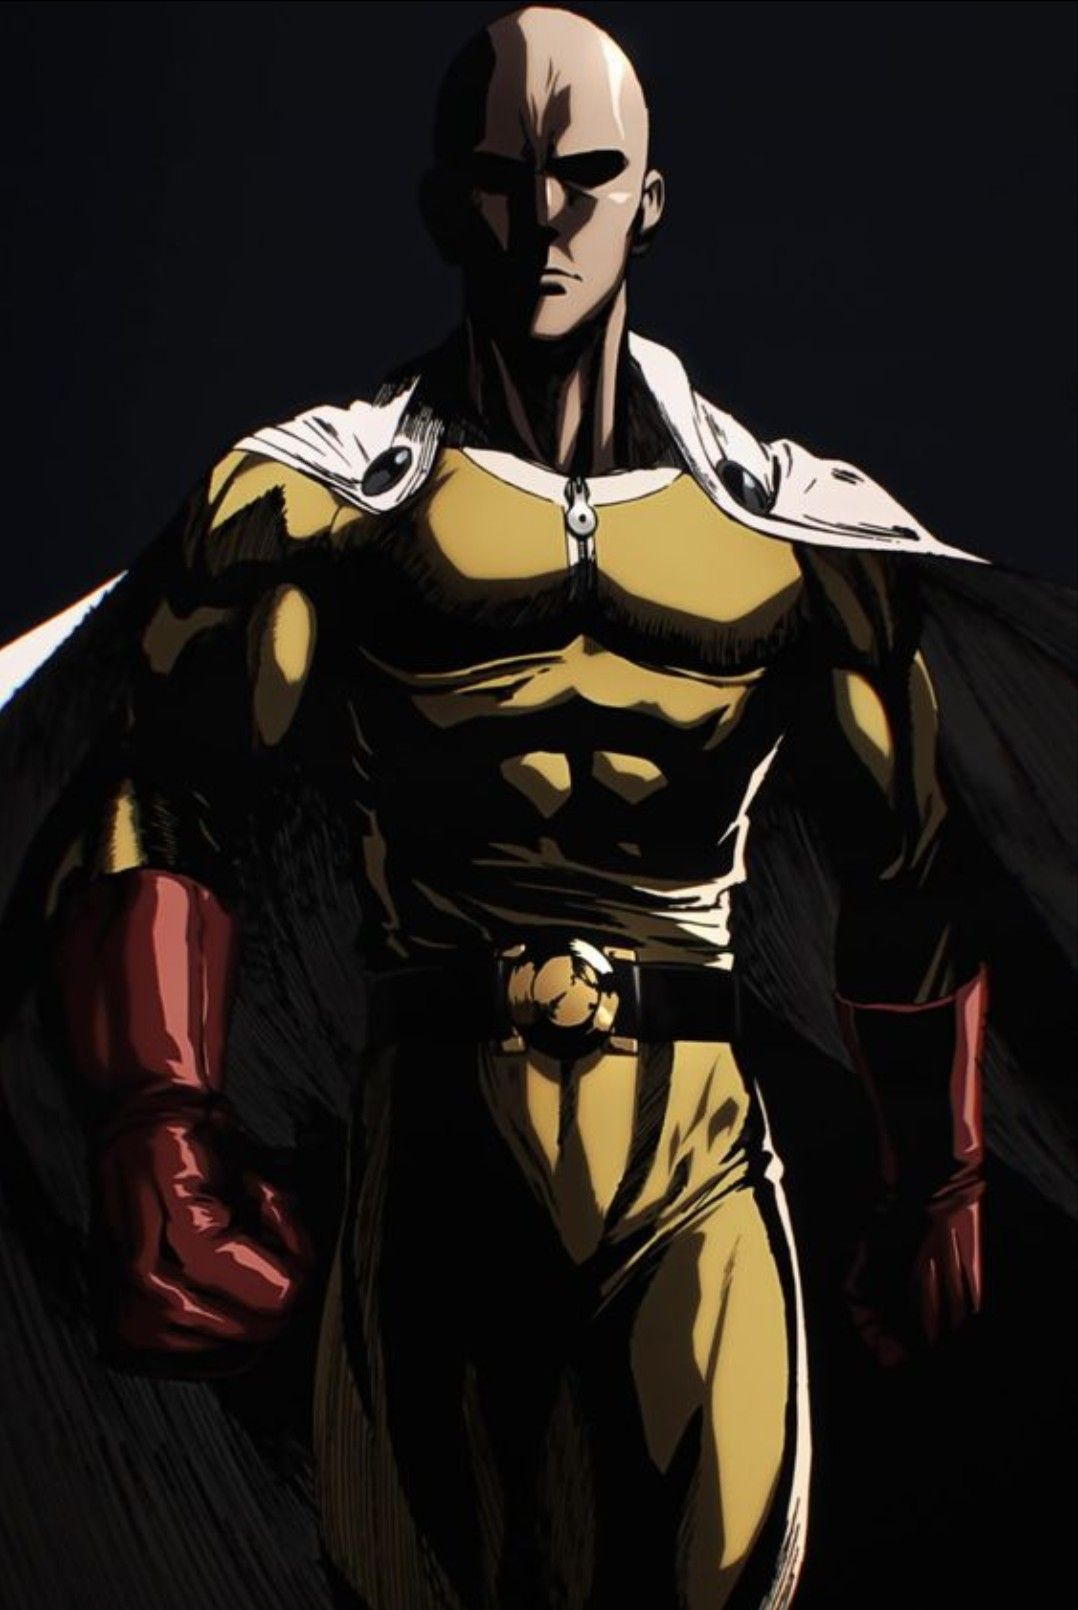 Pin by Camila on 애니 One punch man anime, One punch man